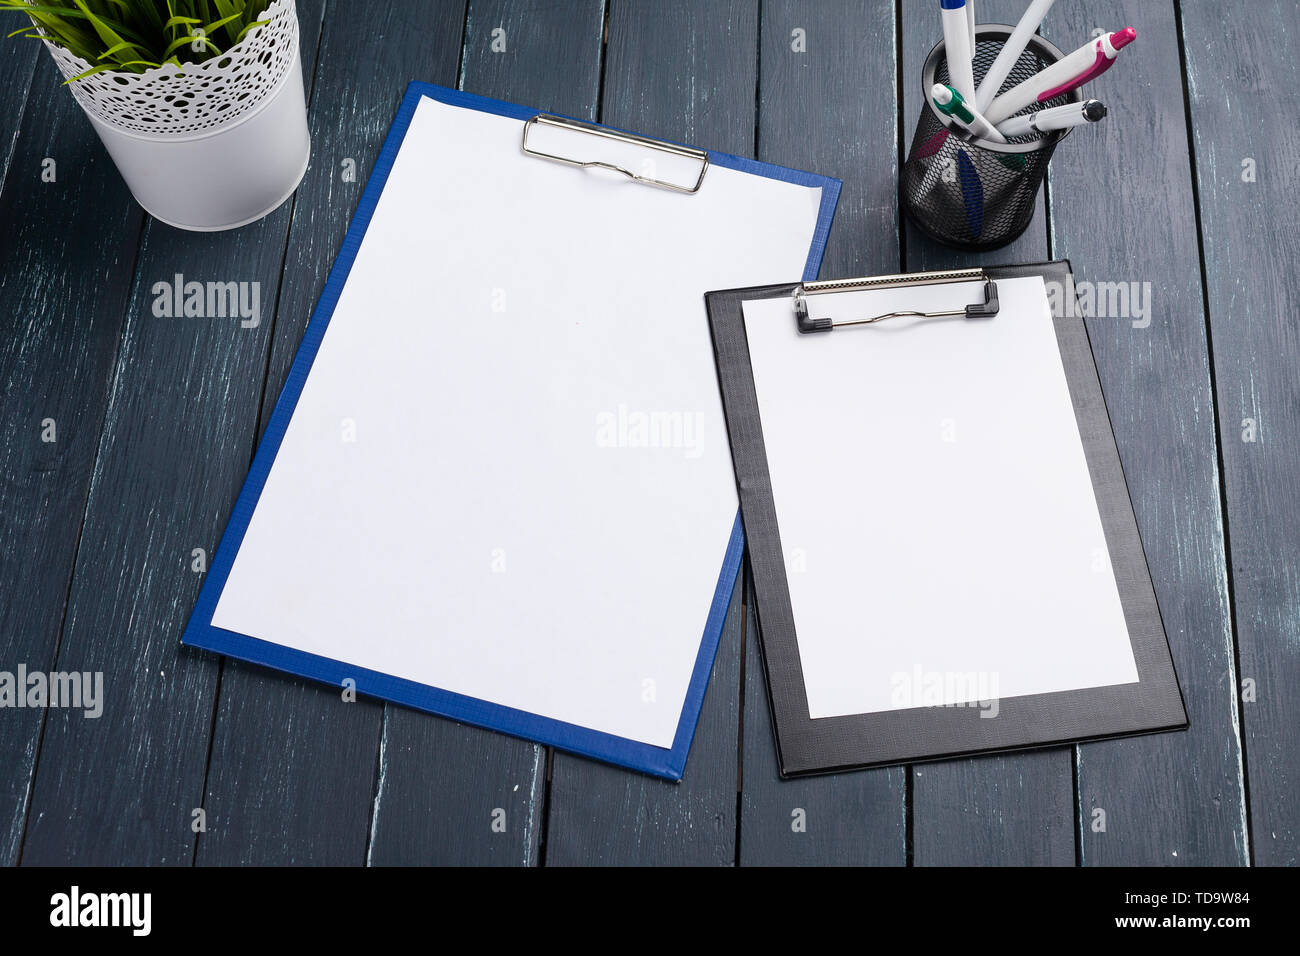 clipboard on wood background - Stock Image